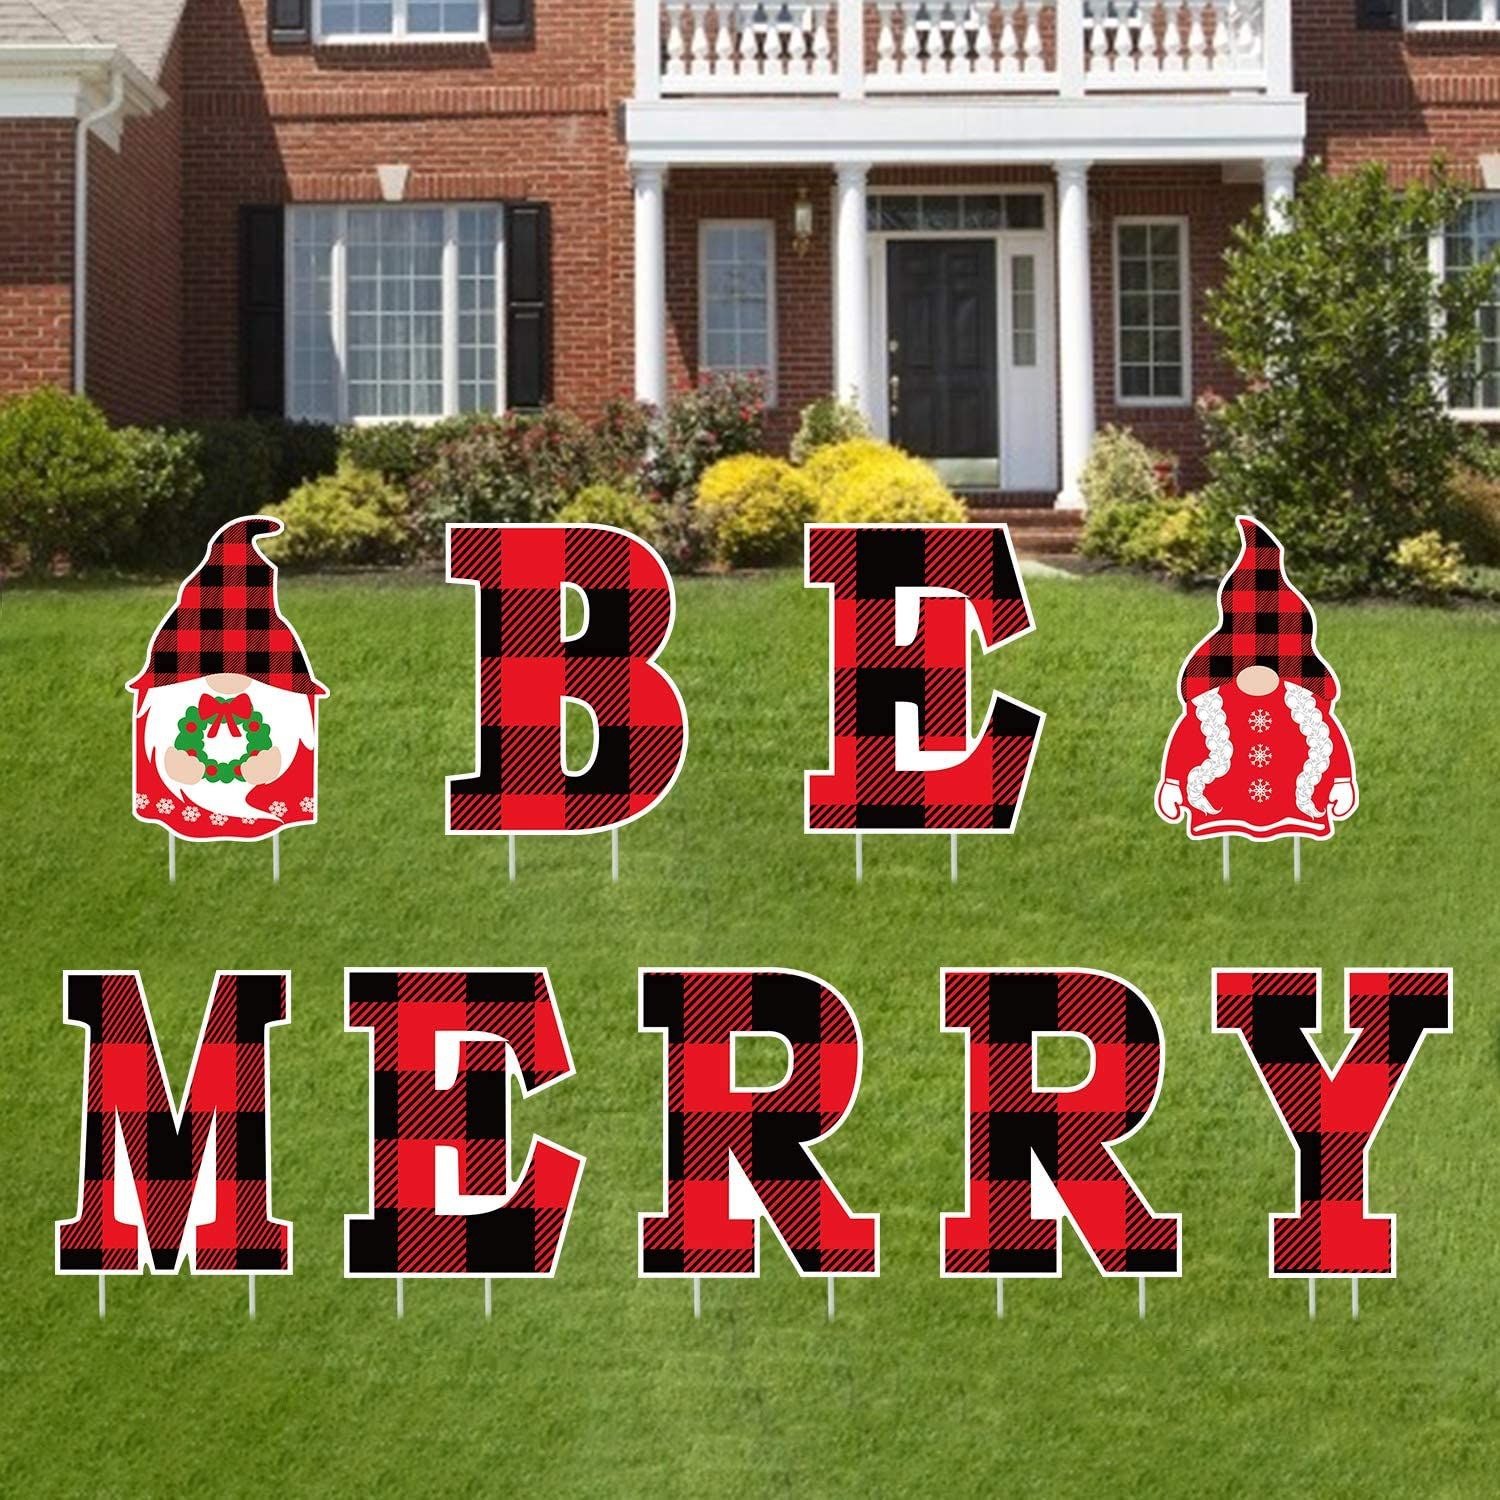 Tifeson Merry Christmas Yard Sign Outdoor Lawn Decorations Gnome Yard Signs- BE MEERY Letter Christmas Holiday Decor- Red and Black Buffalo Check Plaid Style